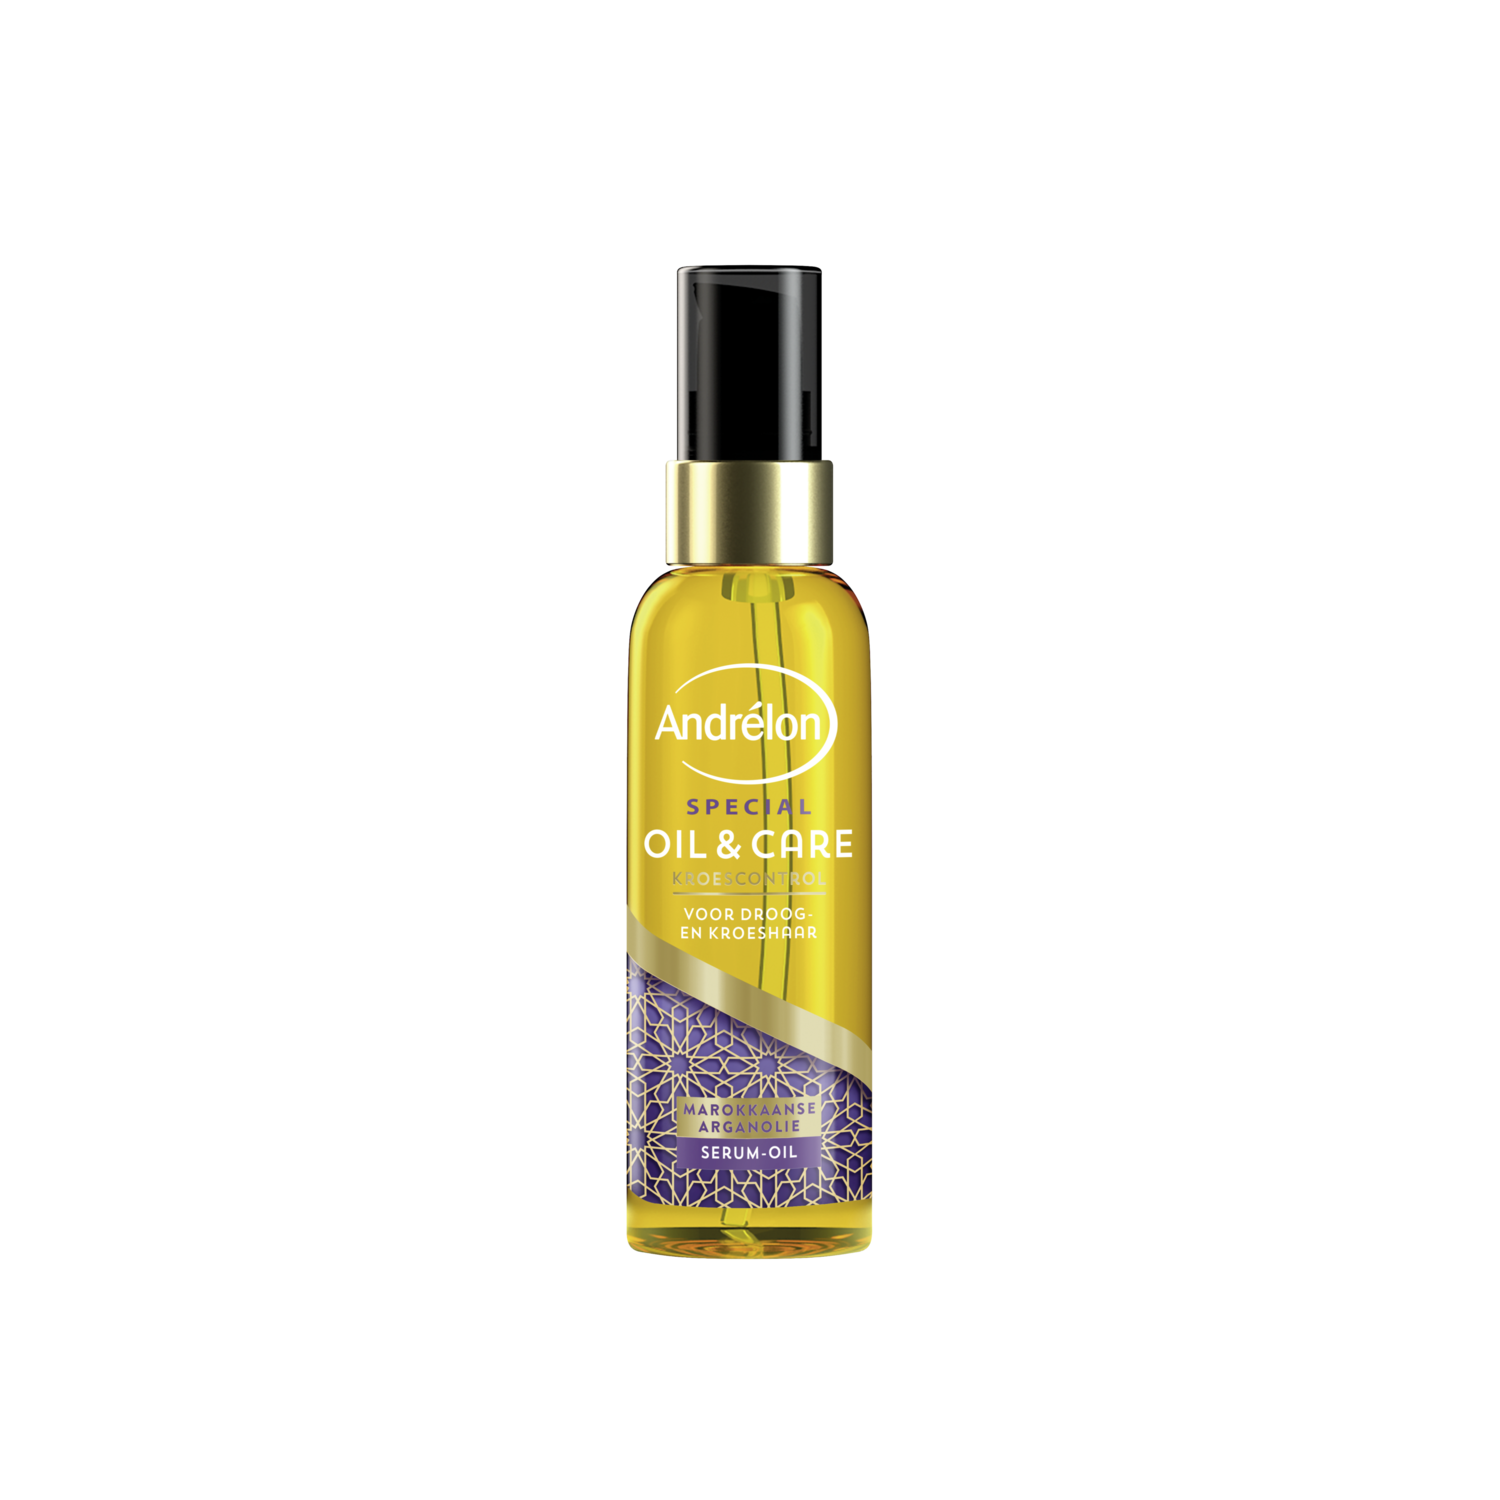 Andrelon Special Oil Care Oil 75ml 8712561565998